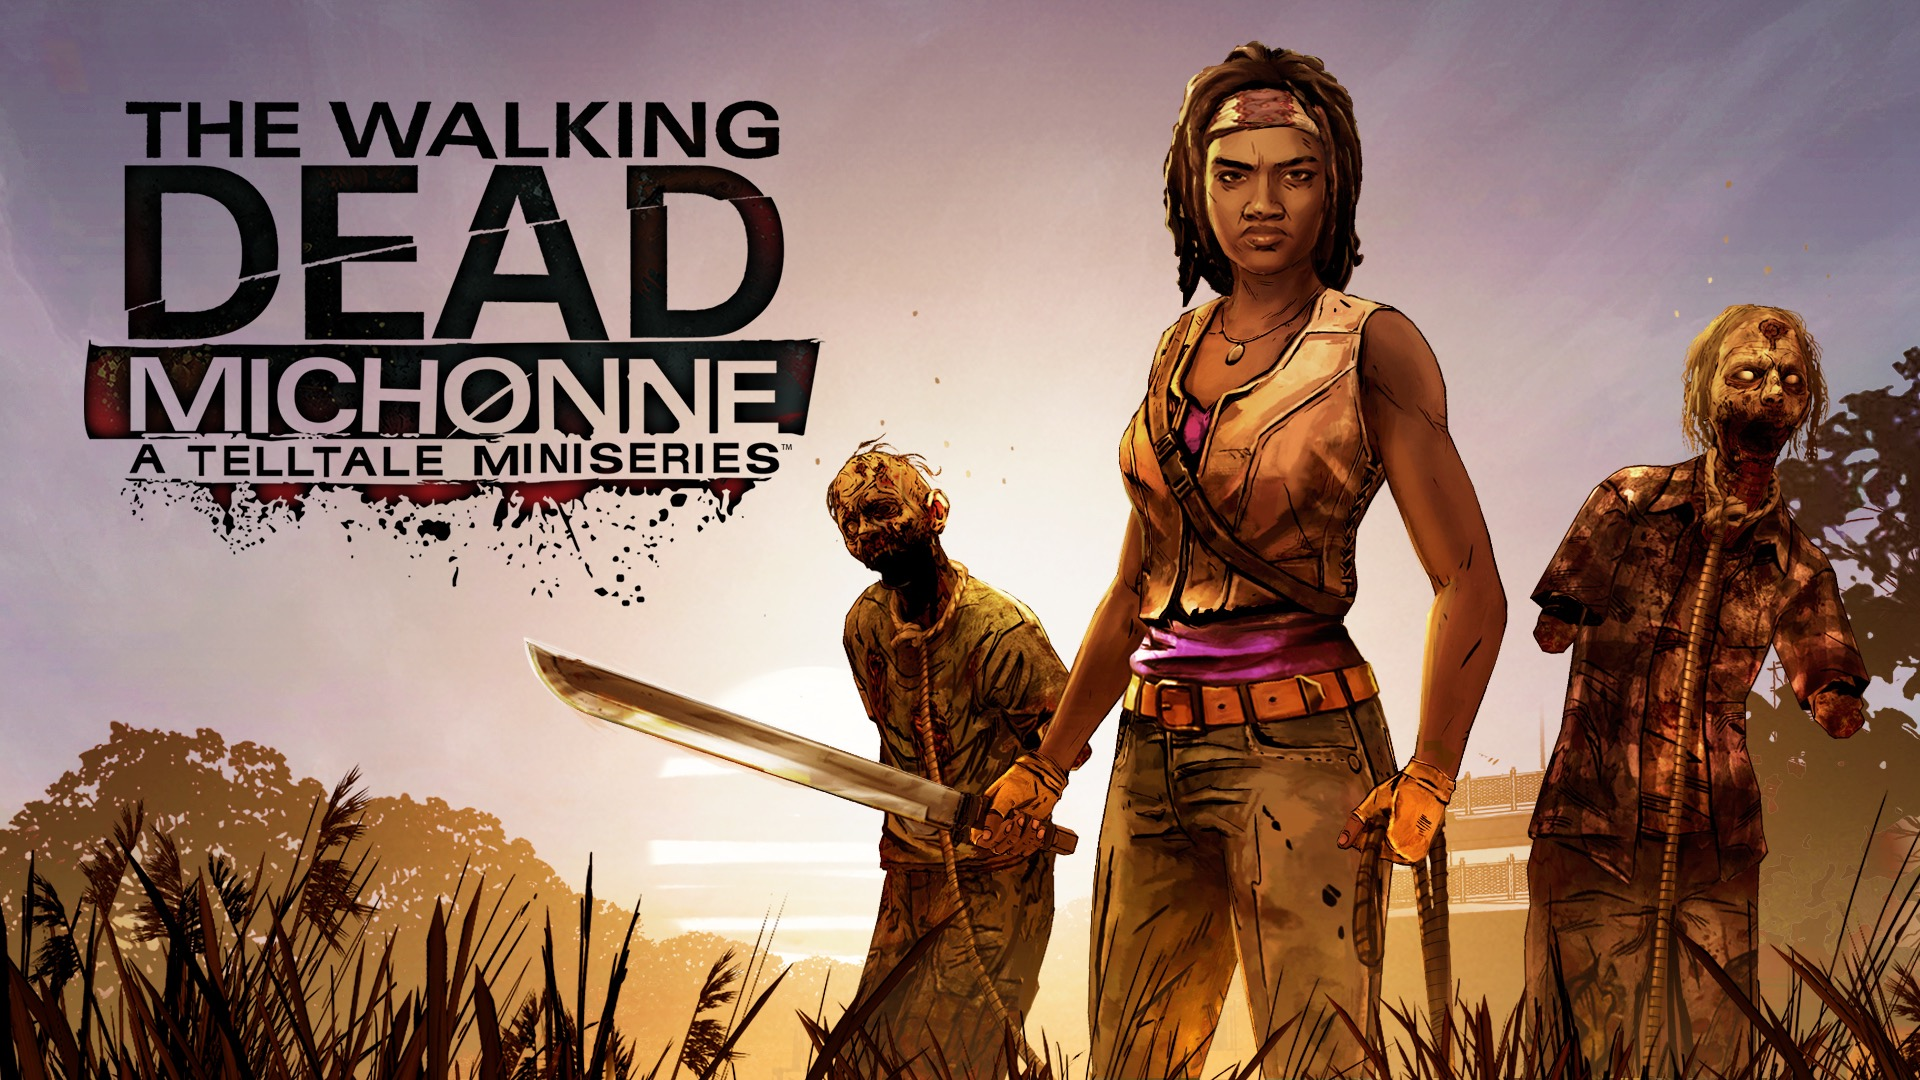 The First Episode of 'The Walking Dead: Michonne' Miniseries Releases February 25th